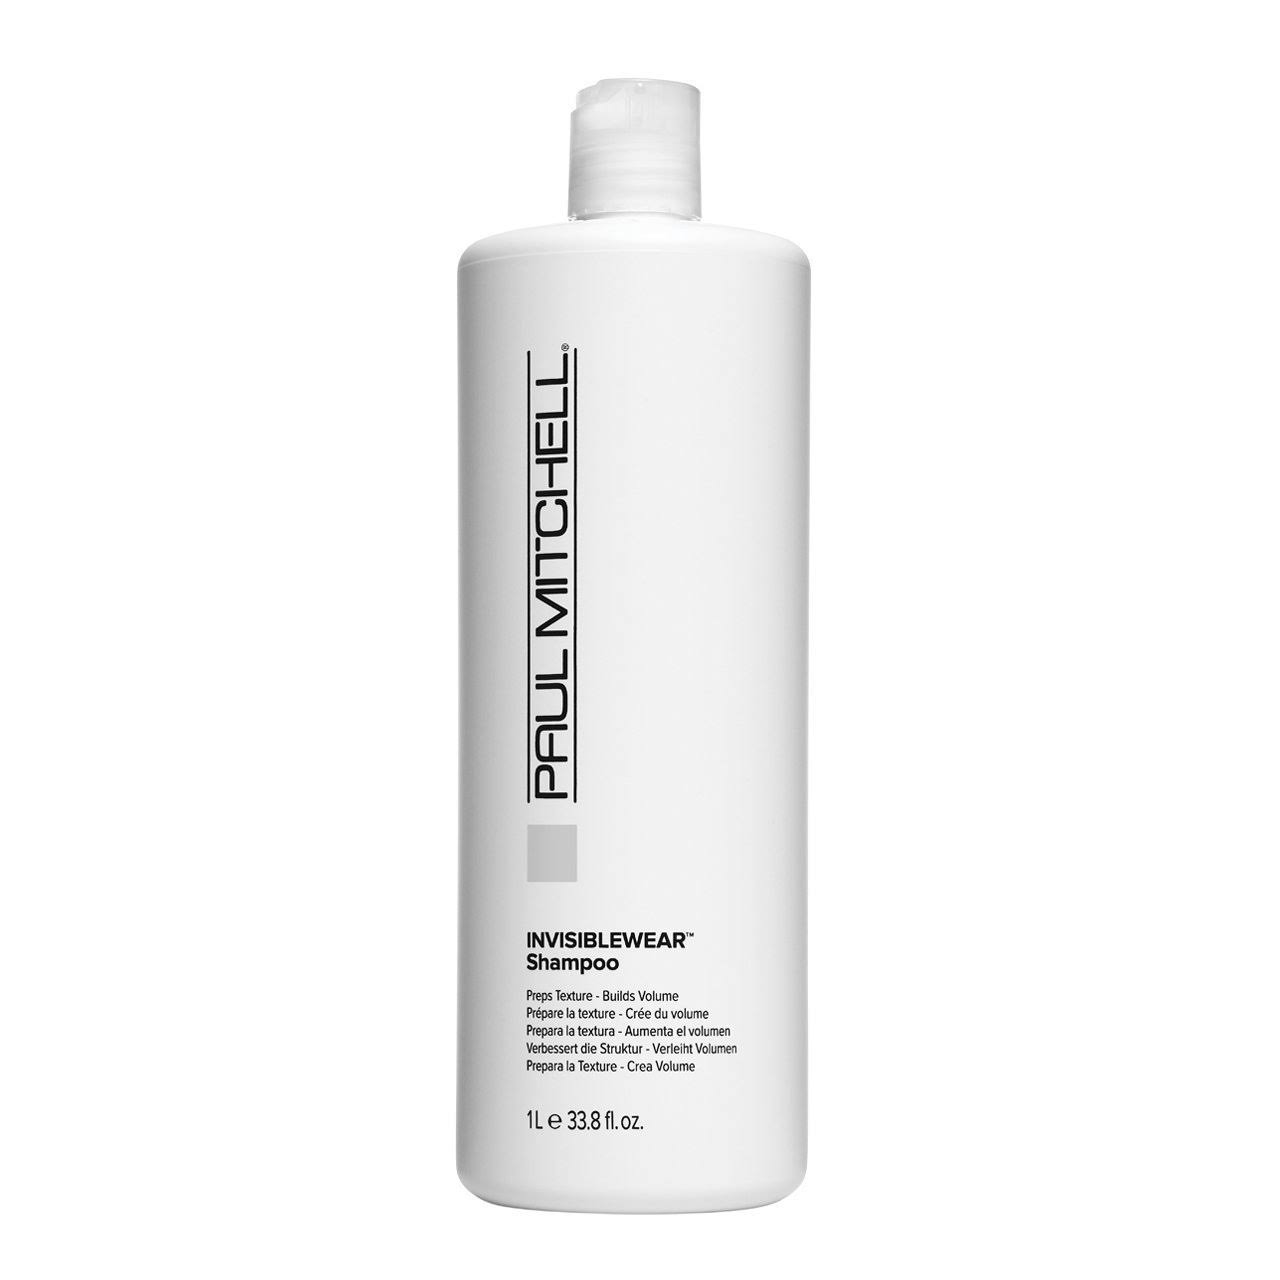 Paul Mitchell Invisiblewear Shampoo - 33.8oz